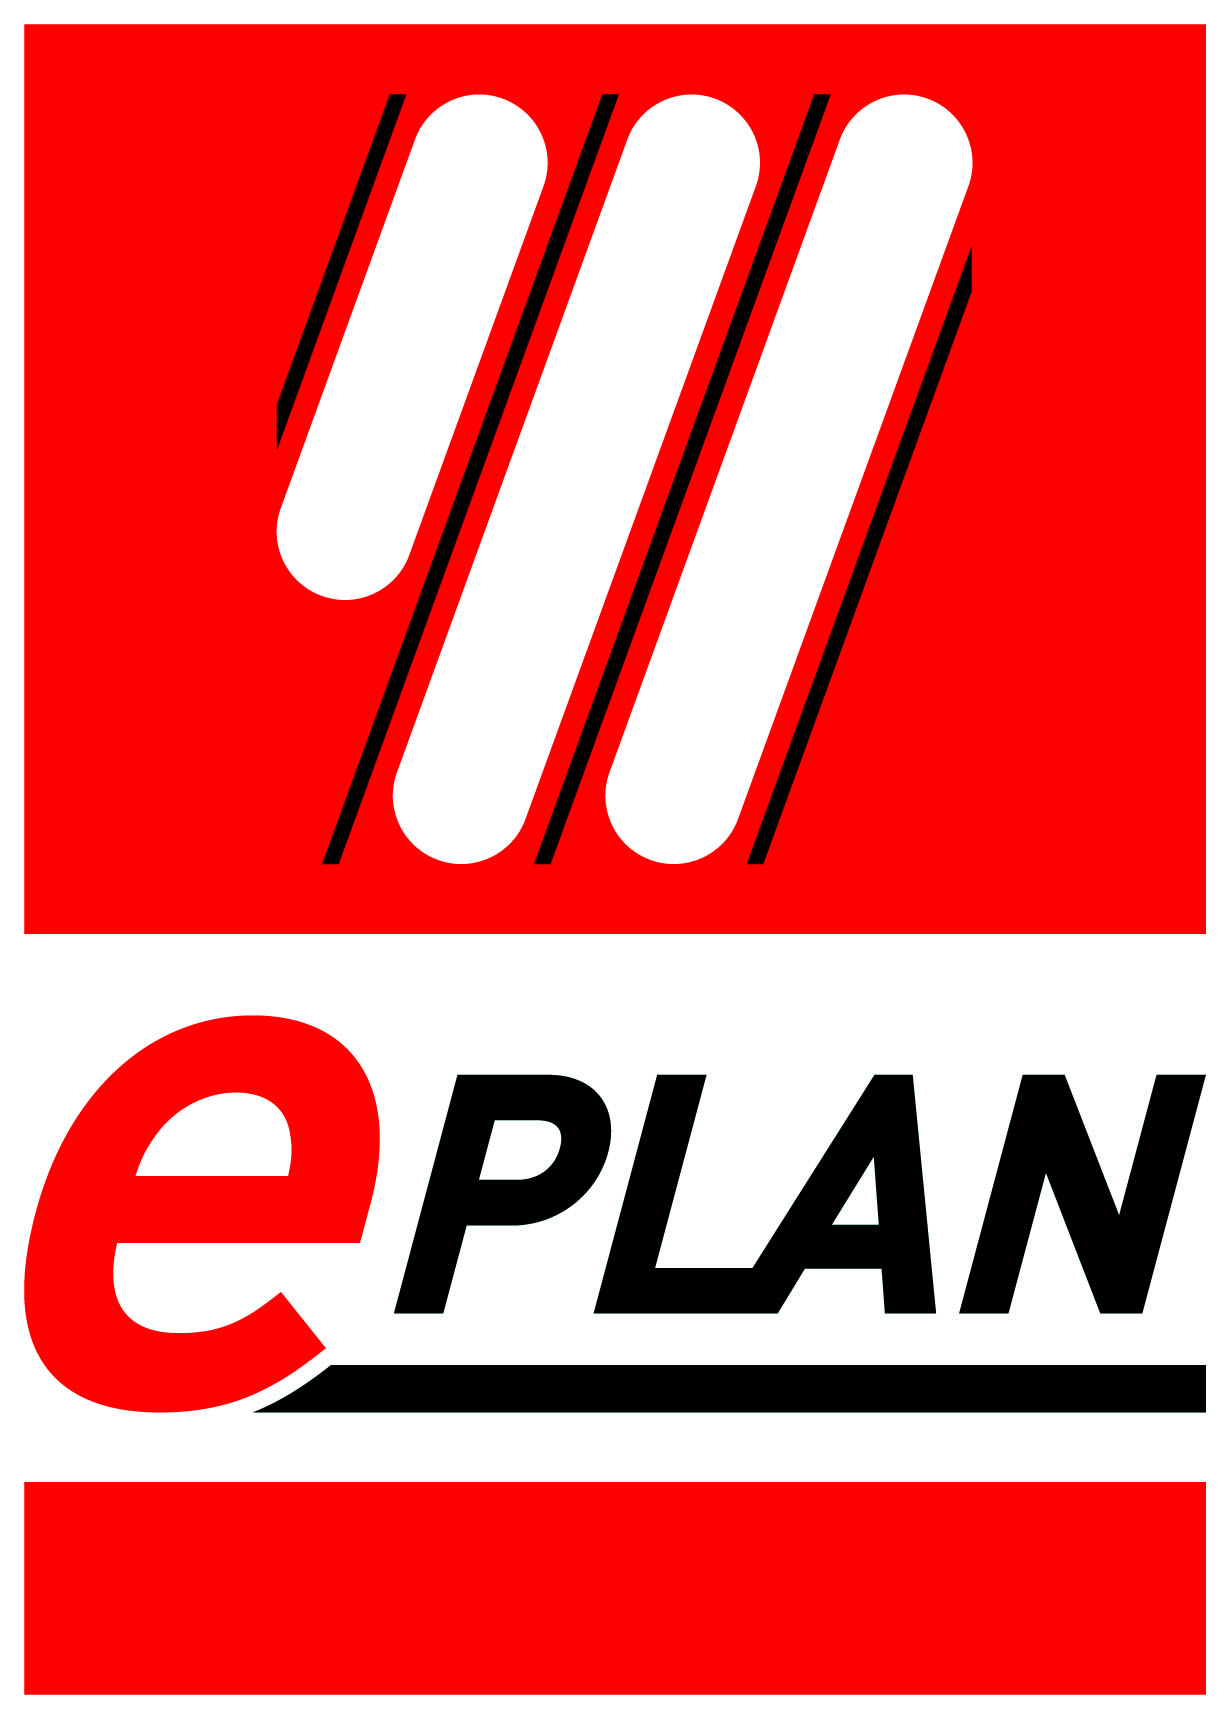 EPLAN Software&Services株式会社